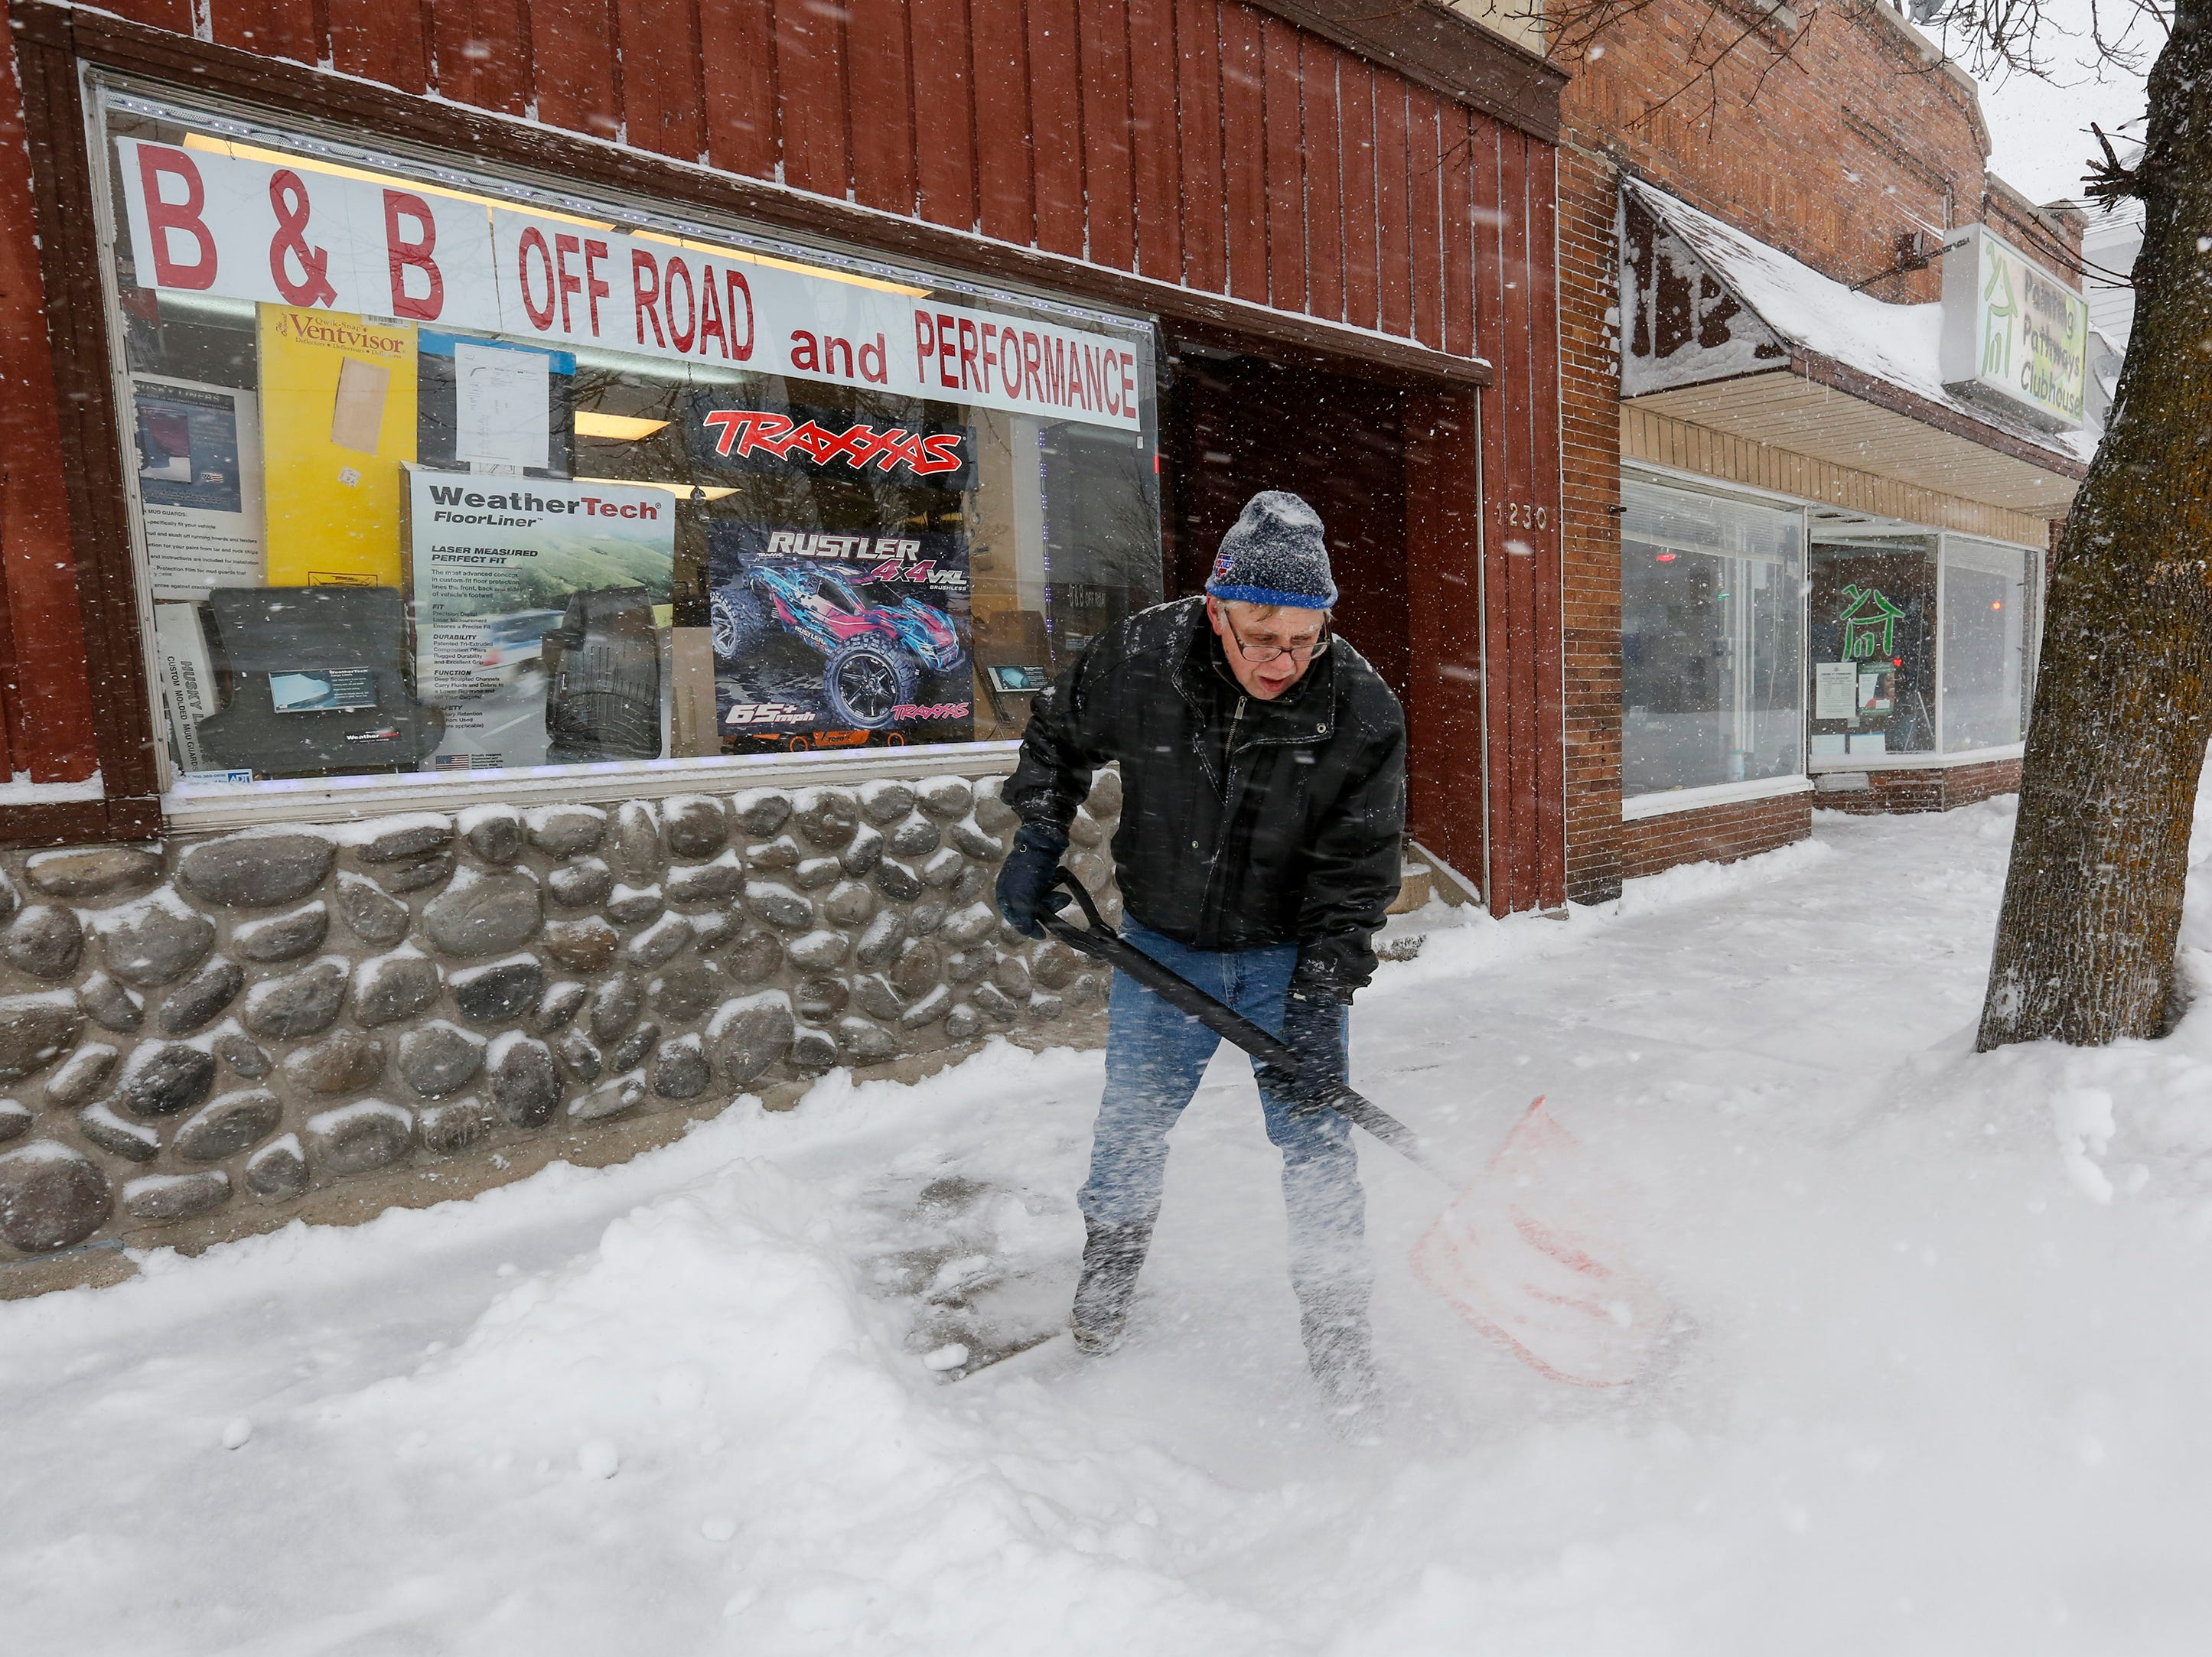 Bill Stalvey, of Manitowoc, clears the sidewalk in front of his shop, B & B Off Road and Performance RC, during a winter storm Monday, Jan. 28, 2019, in Manitowoc, Wis.